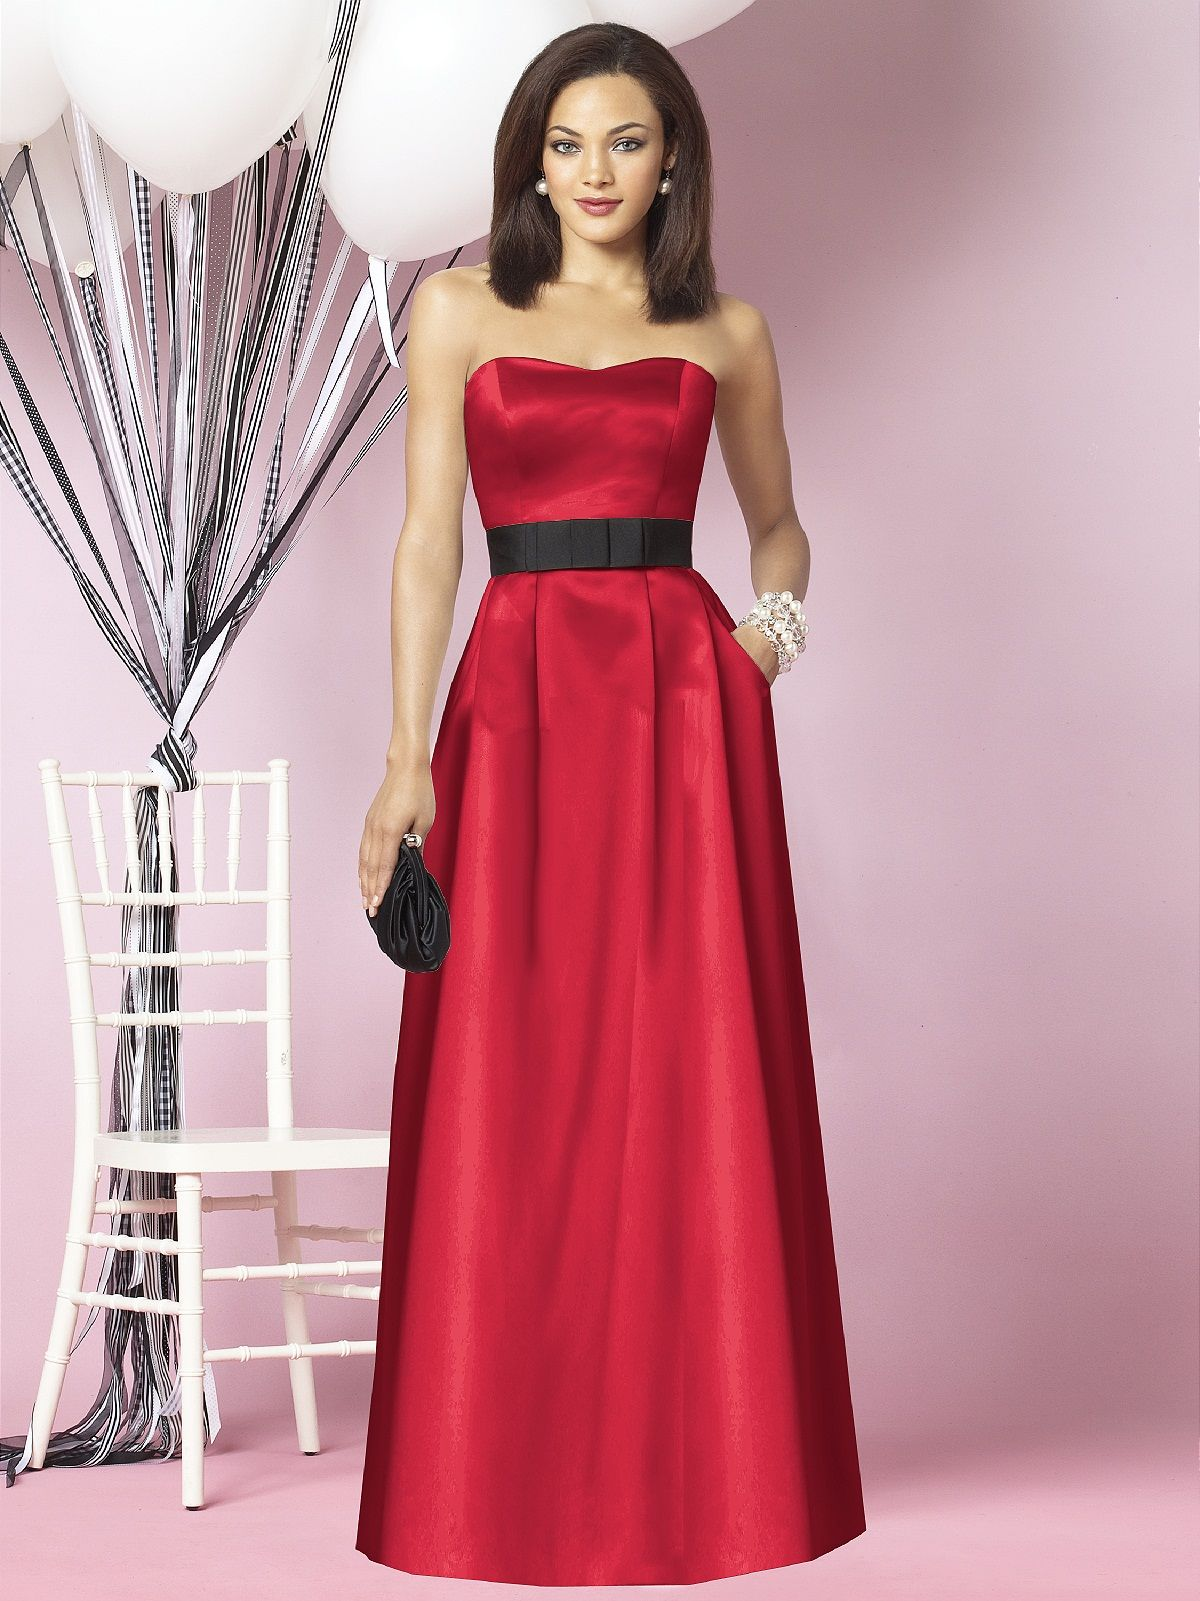 Red dress in red and black bridesmaid dresses unique and red dress in red and black bridesmaid dresses unique and elegant ombrellifo Image collections